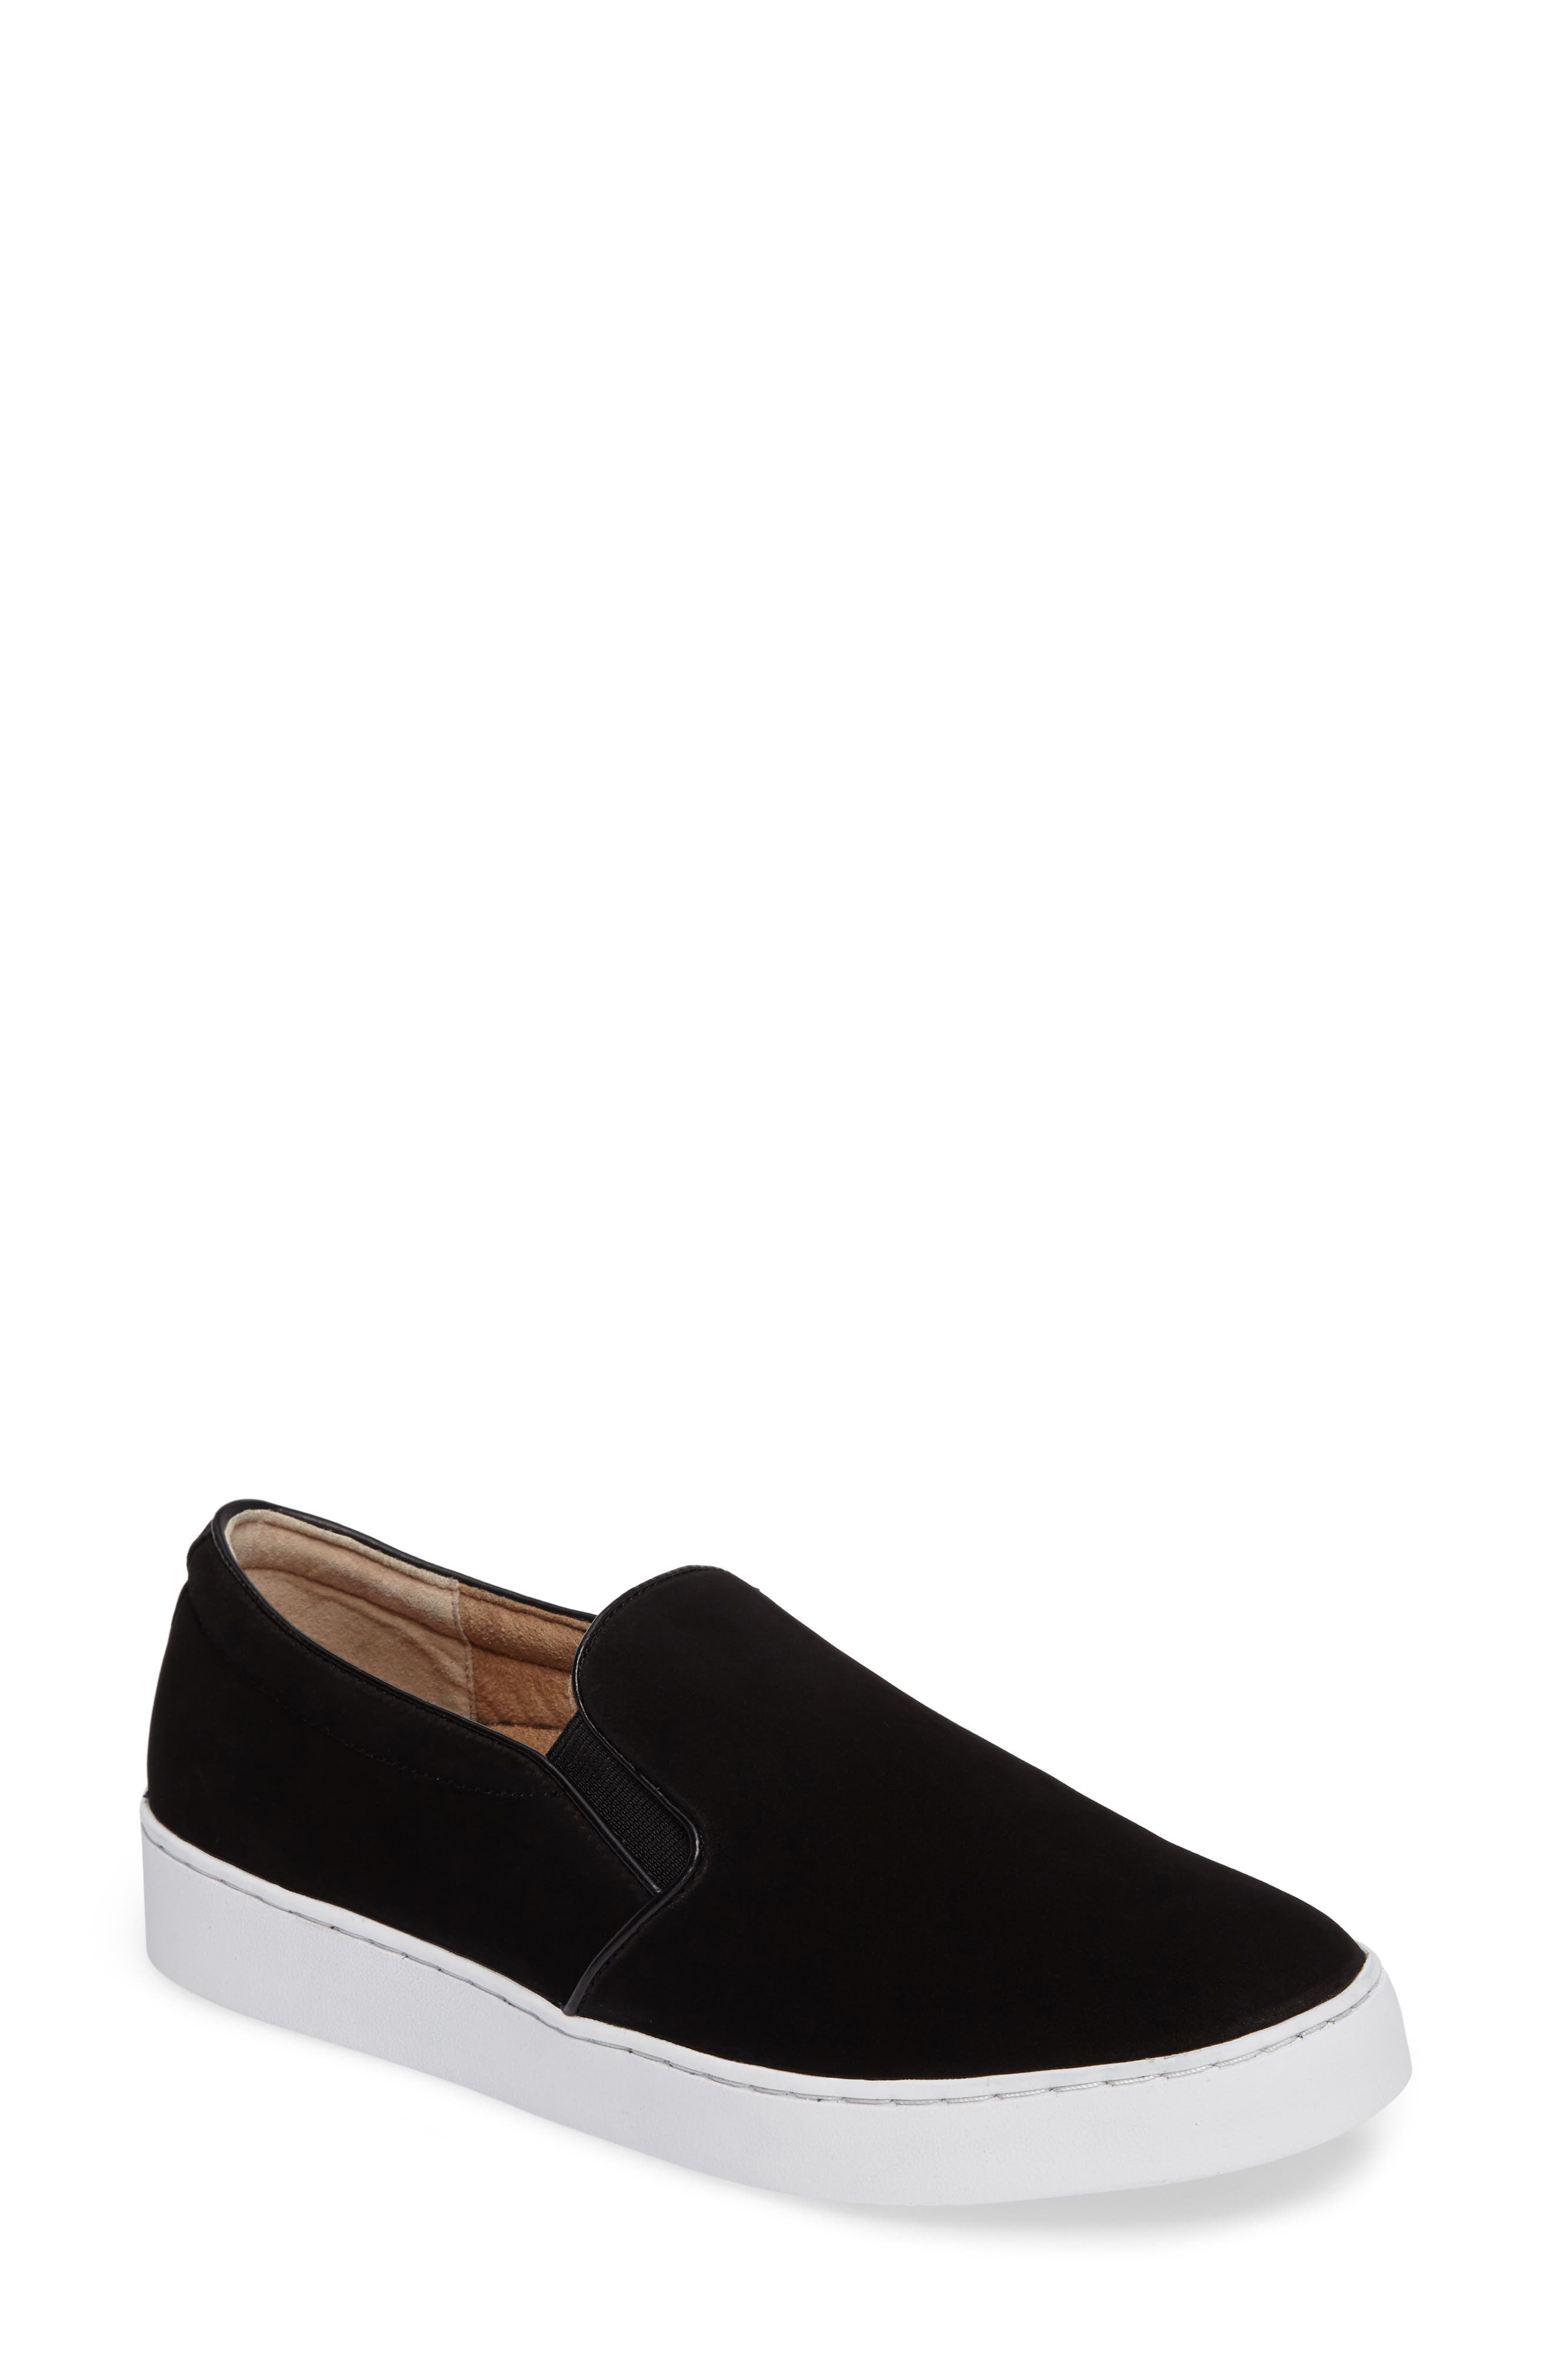 Double Gore Slip-On,                             Main thumbnail 1, color,                             Black Suede